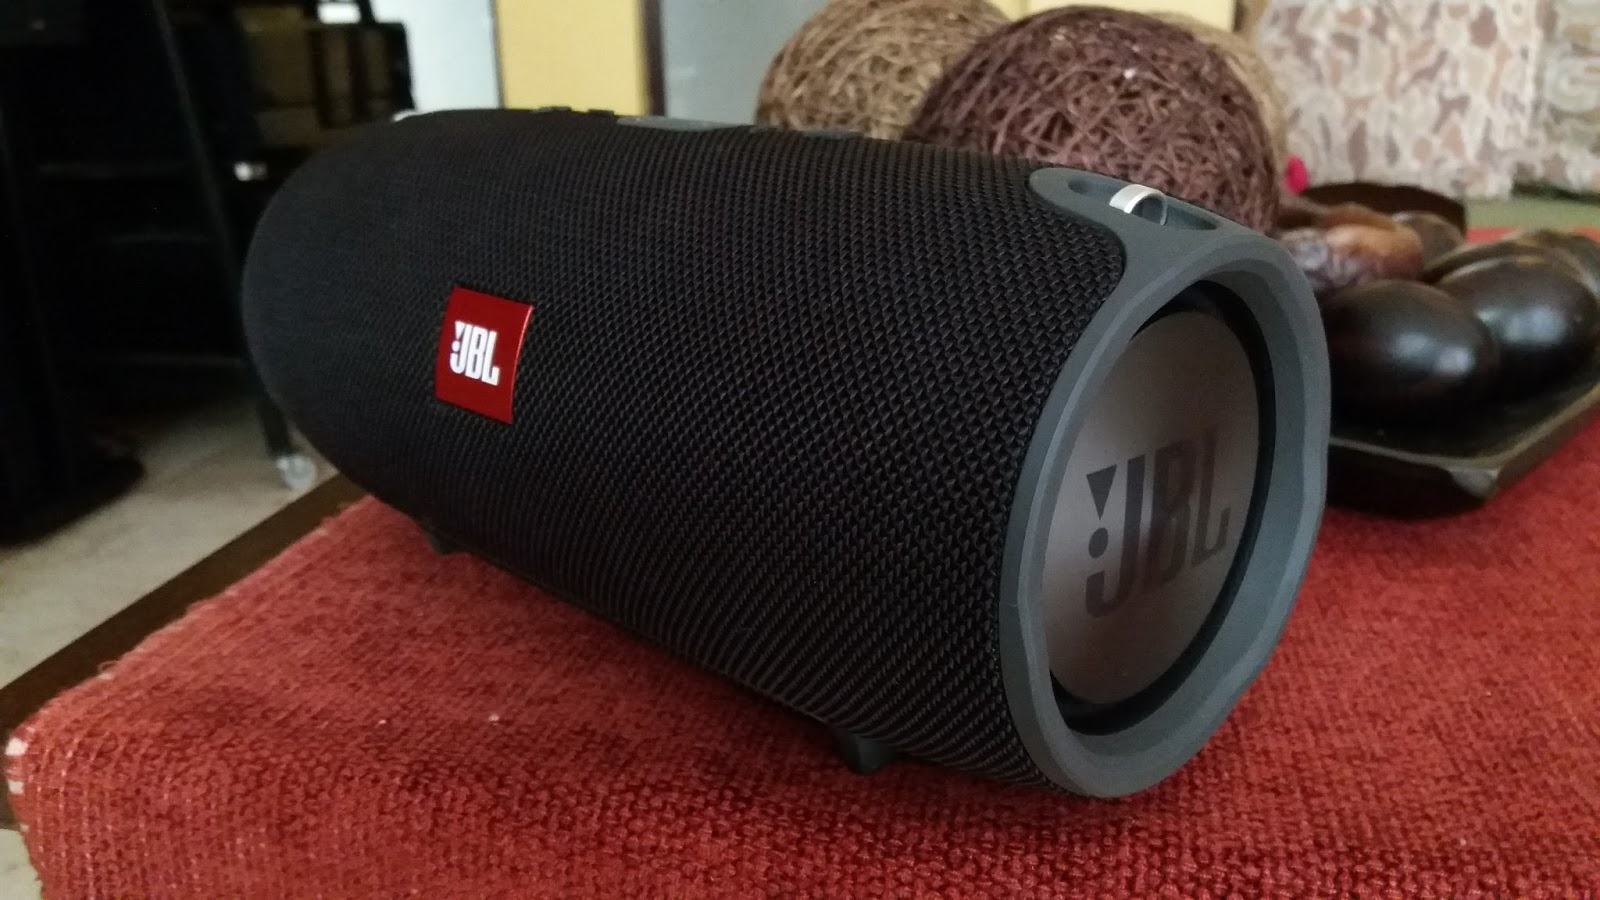 Occasions Of Joy Jbl Xtreme Portable Bluetooth Speaker Review Black Theres A Lot To Like In Such As Great All Day Battery Life With Dual External Device Charging Functionality